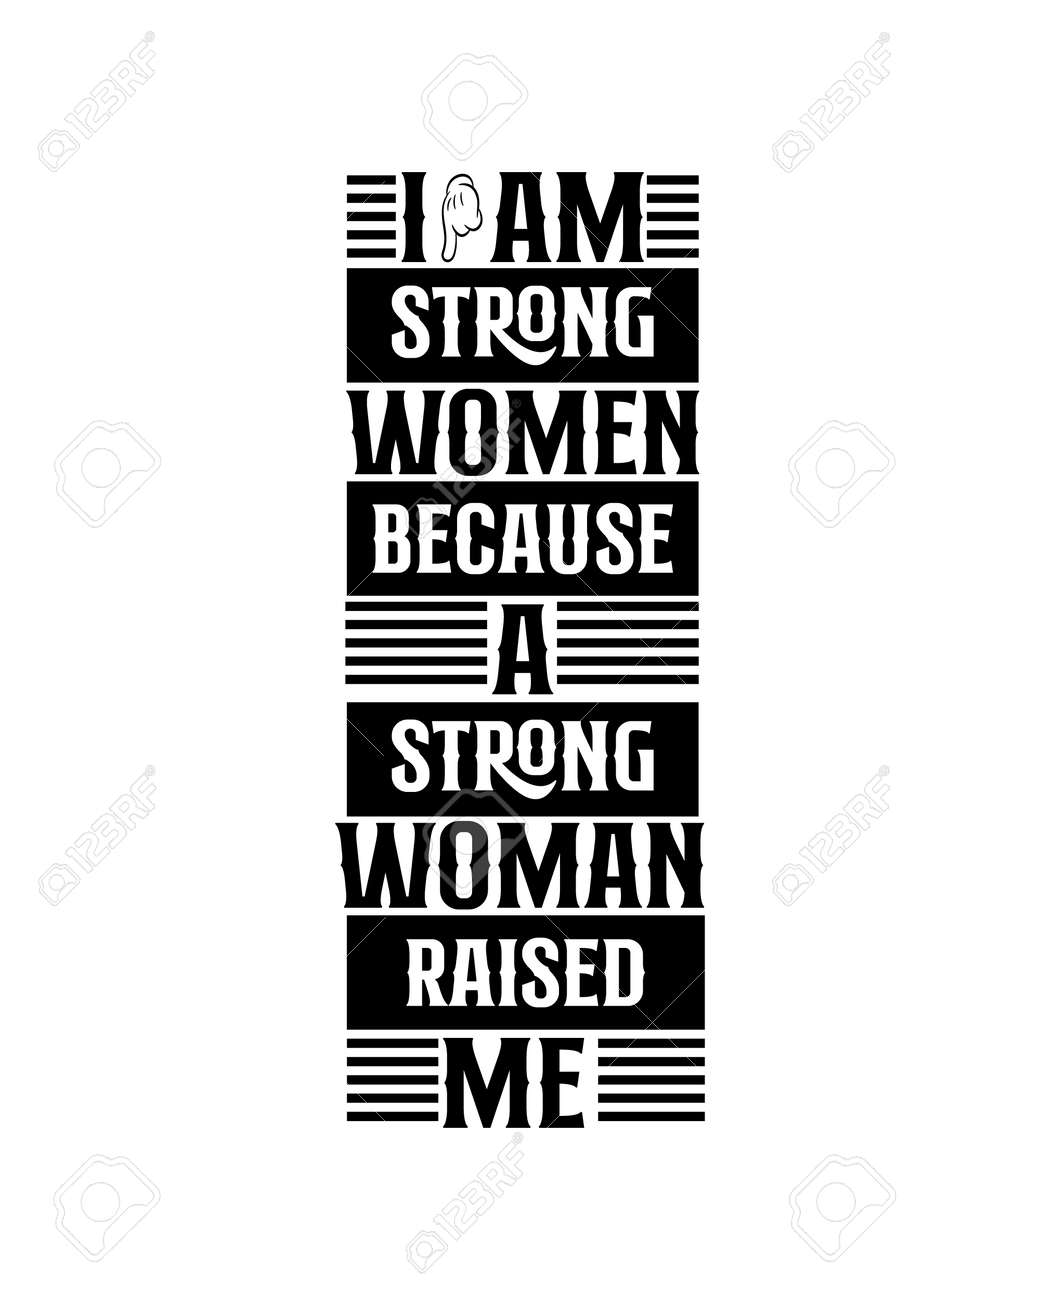 i am strong woman because a strong woman raised me. Hand drawn typography poster design. Premium Vector. - 158081047